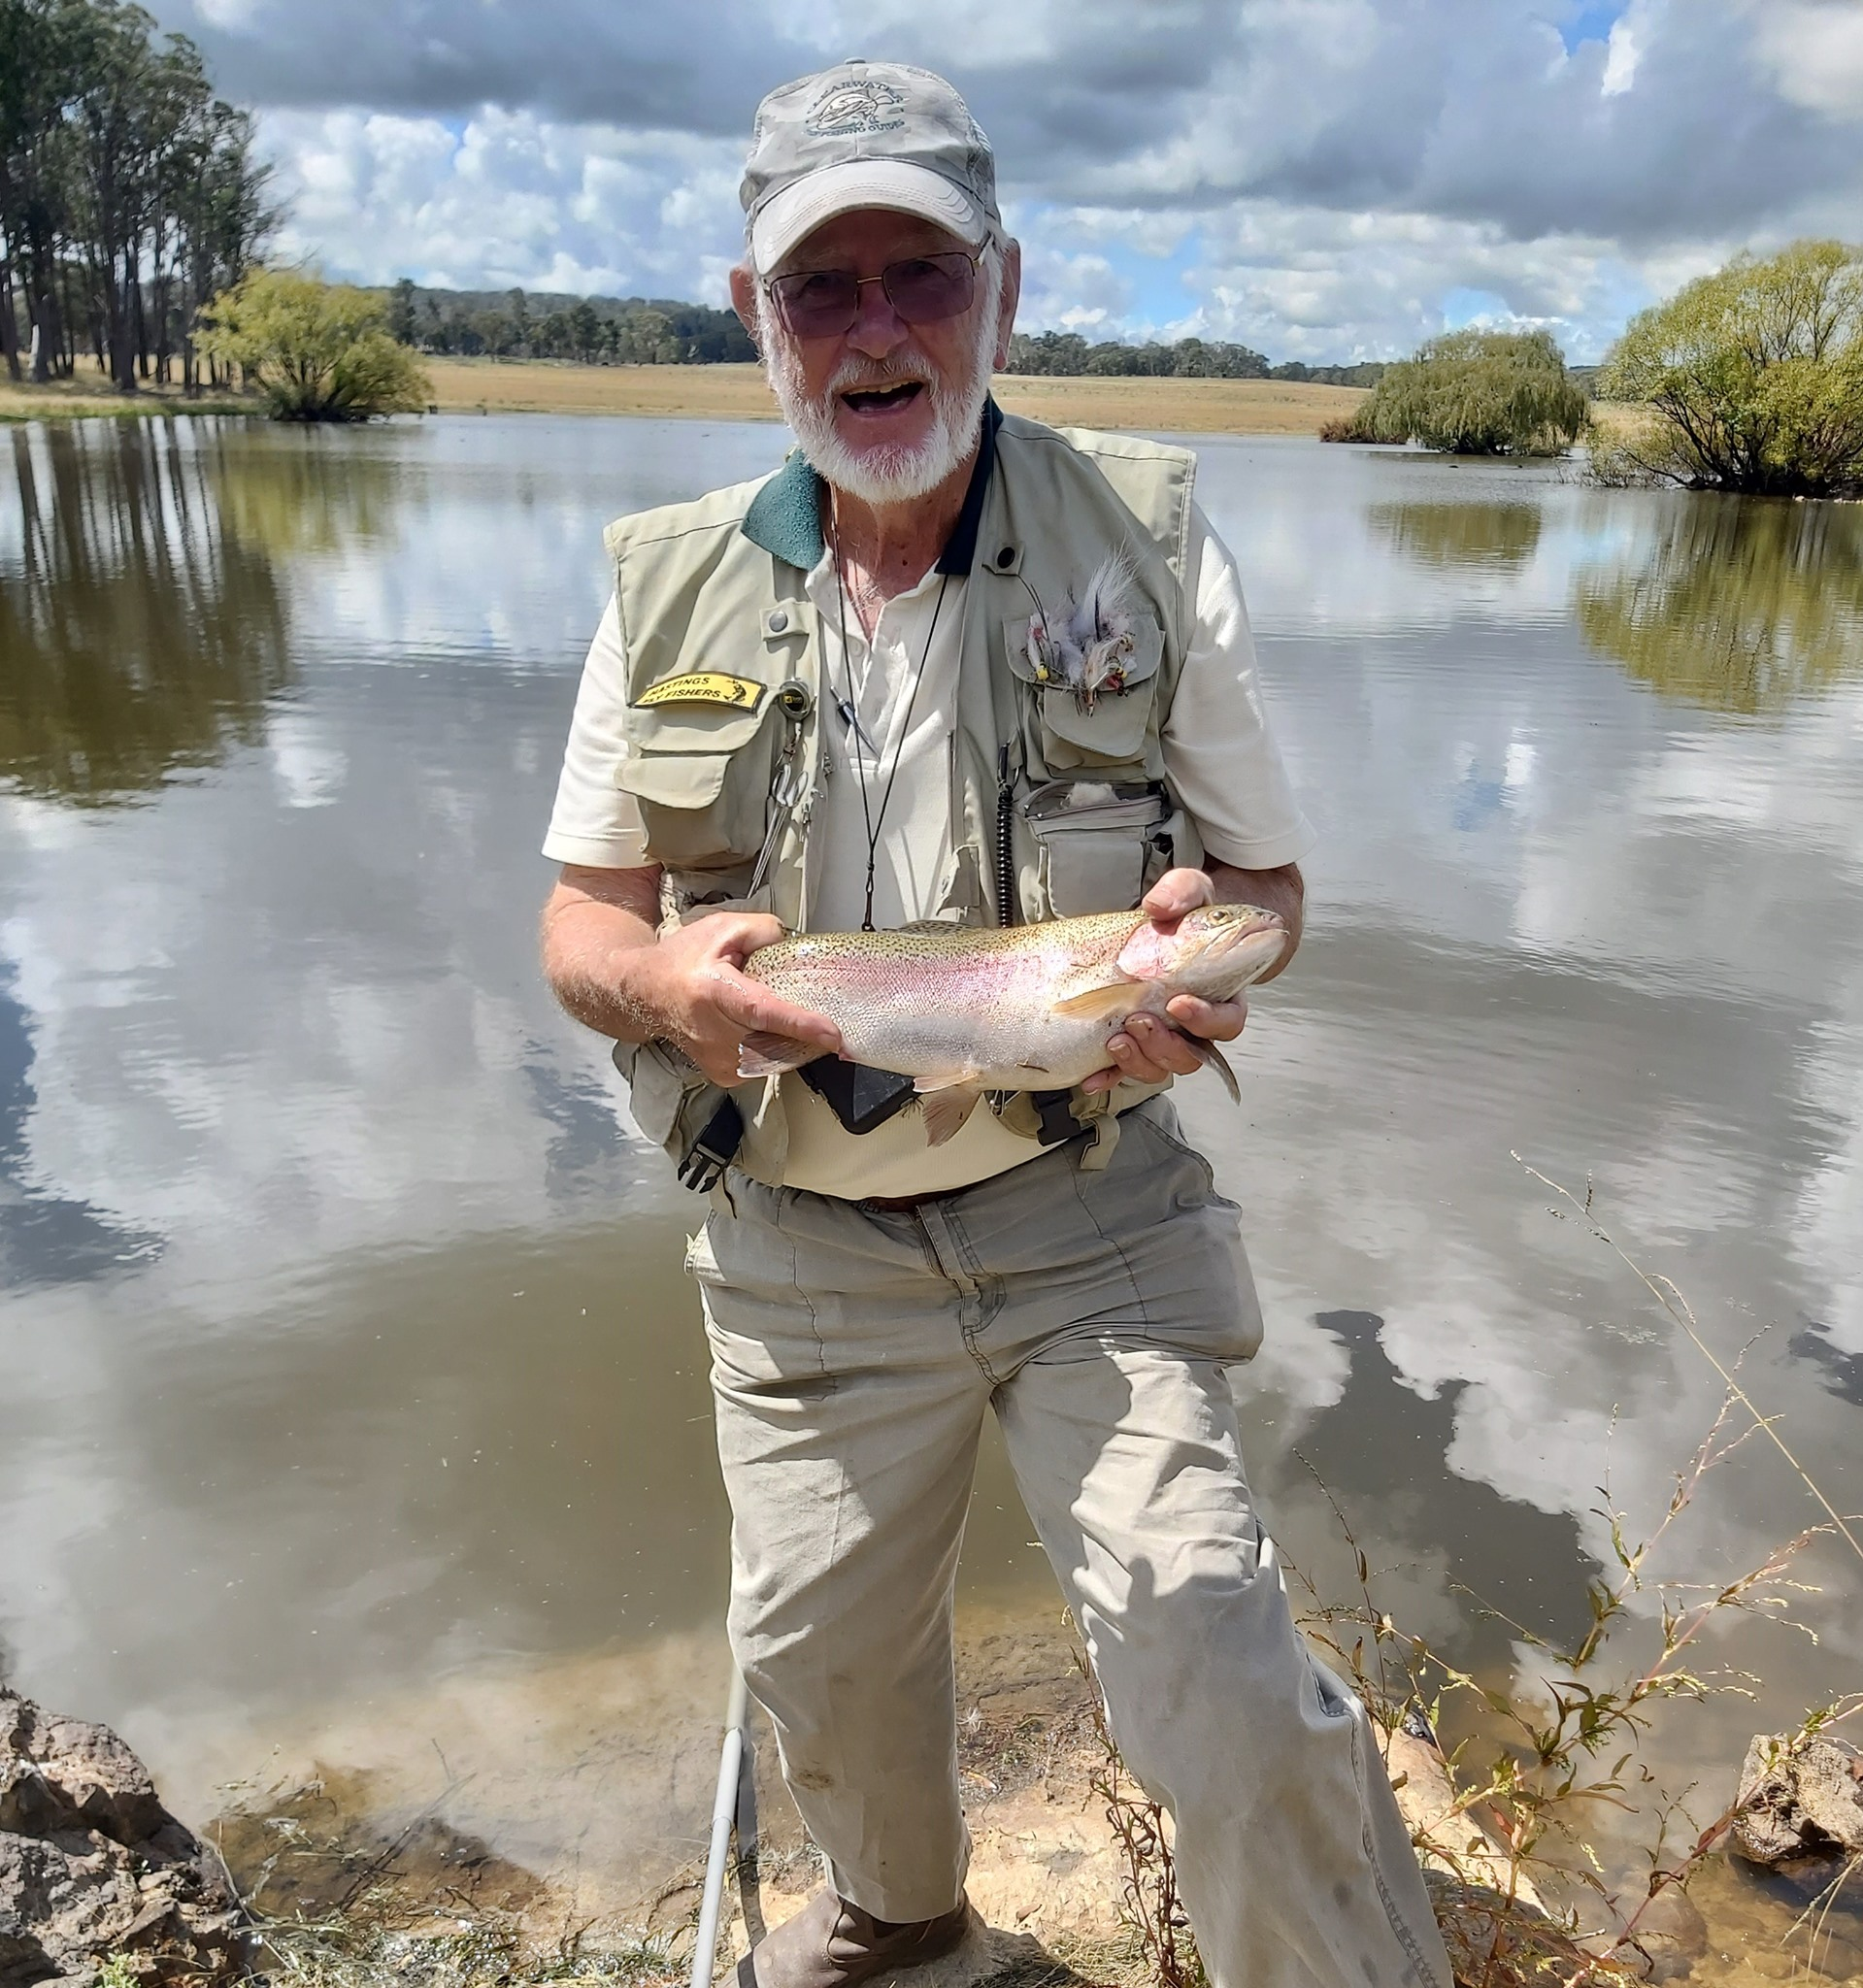 Don with a good-looking trout he caught at Dunmore Trout Waters